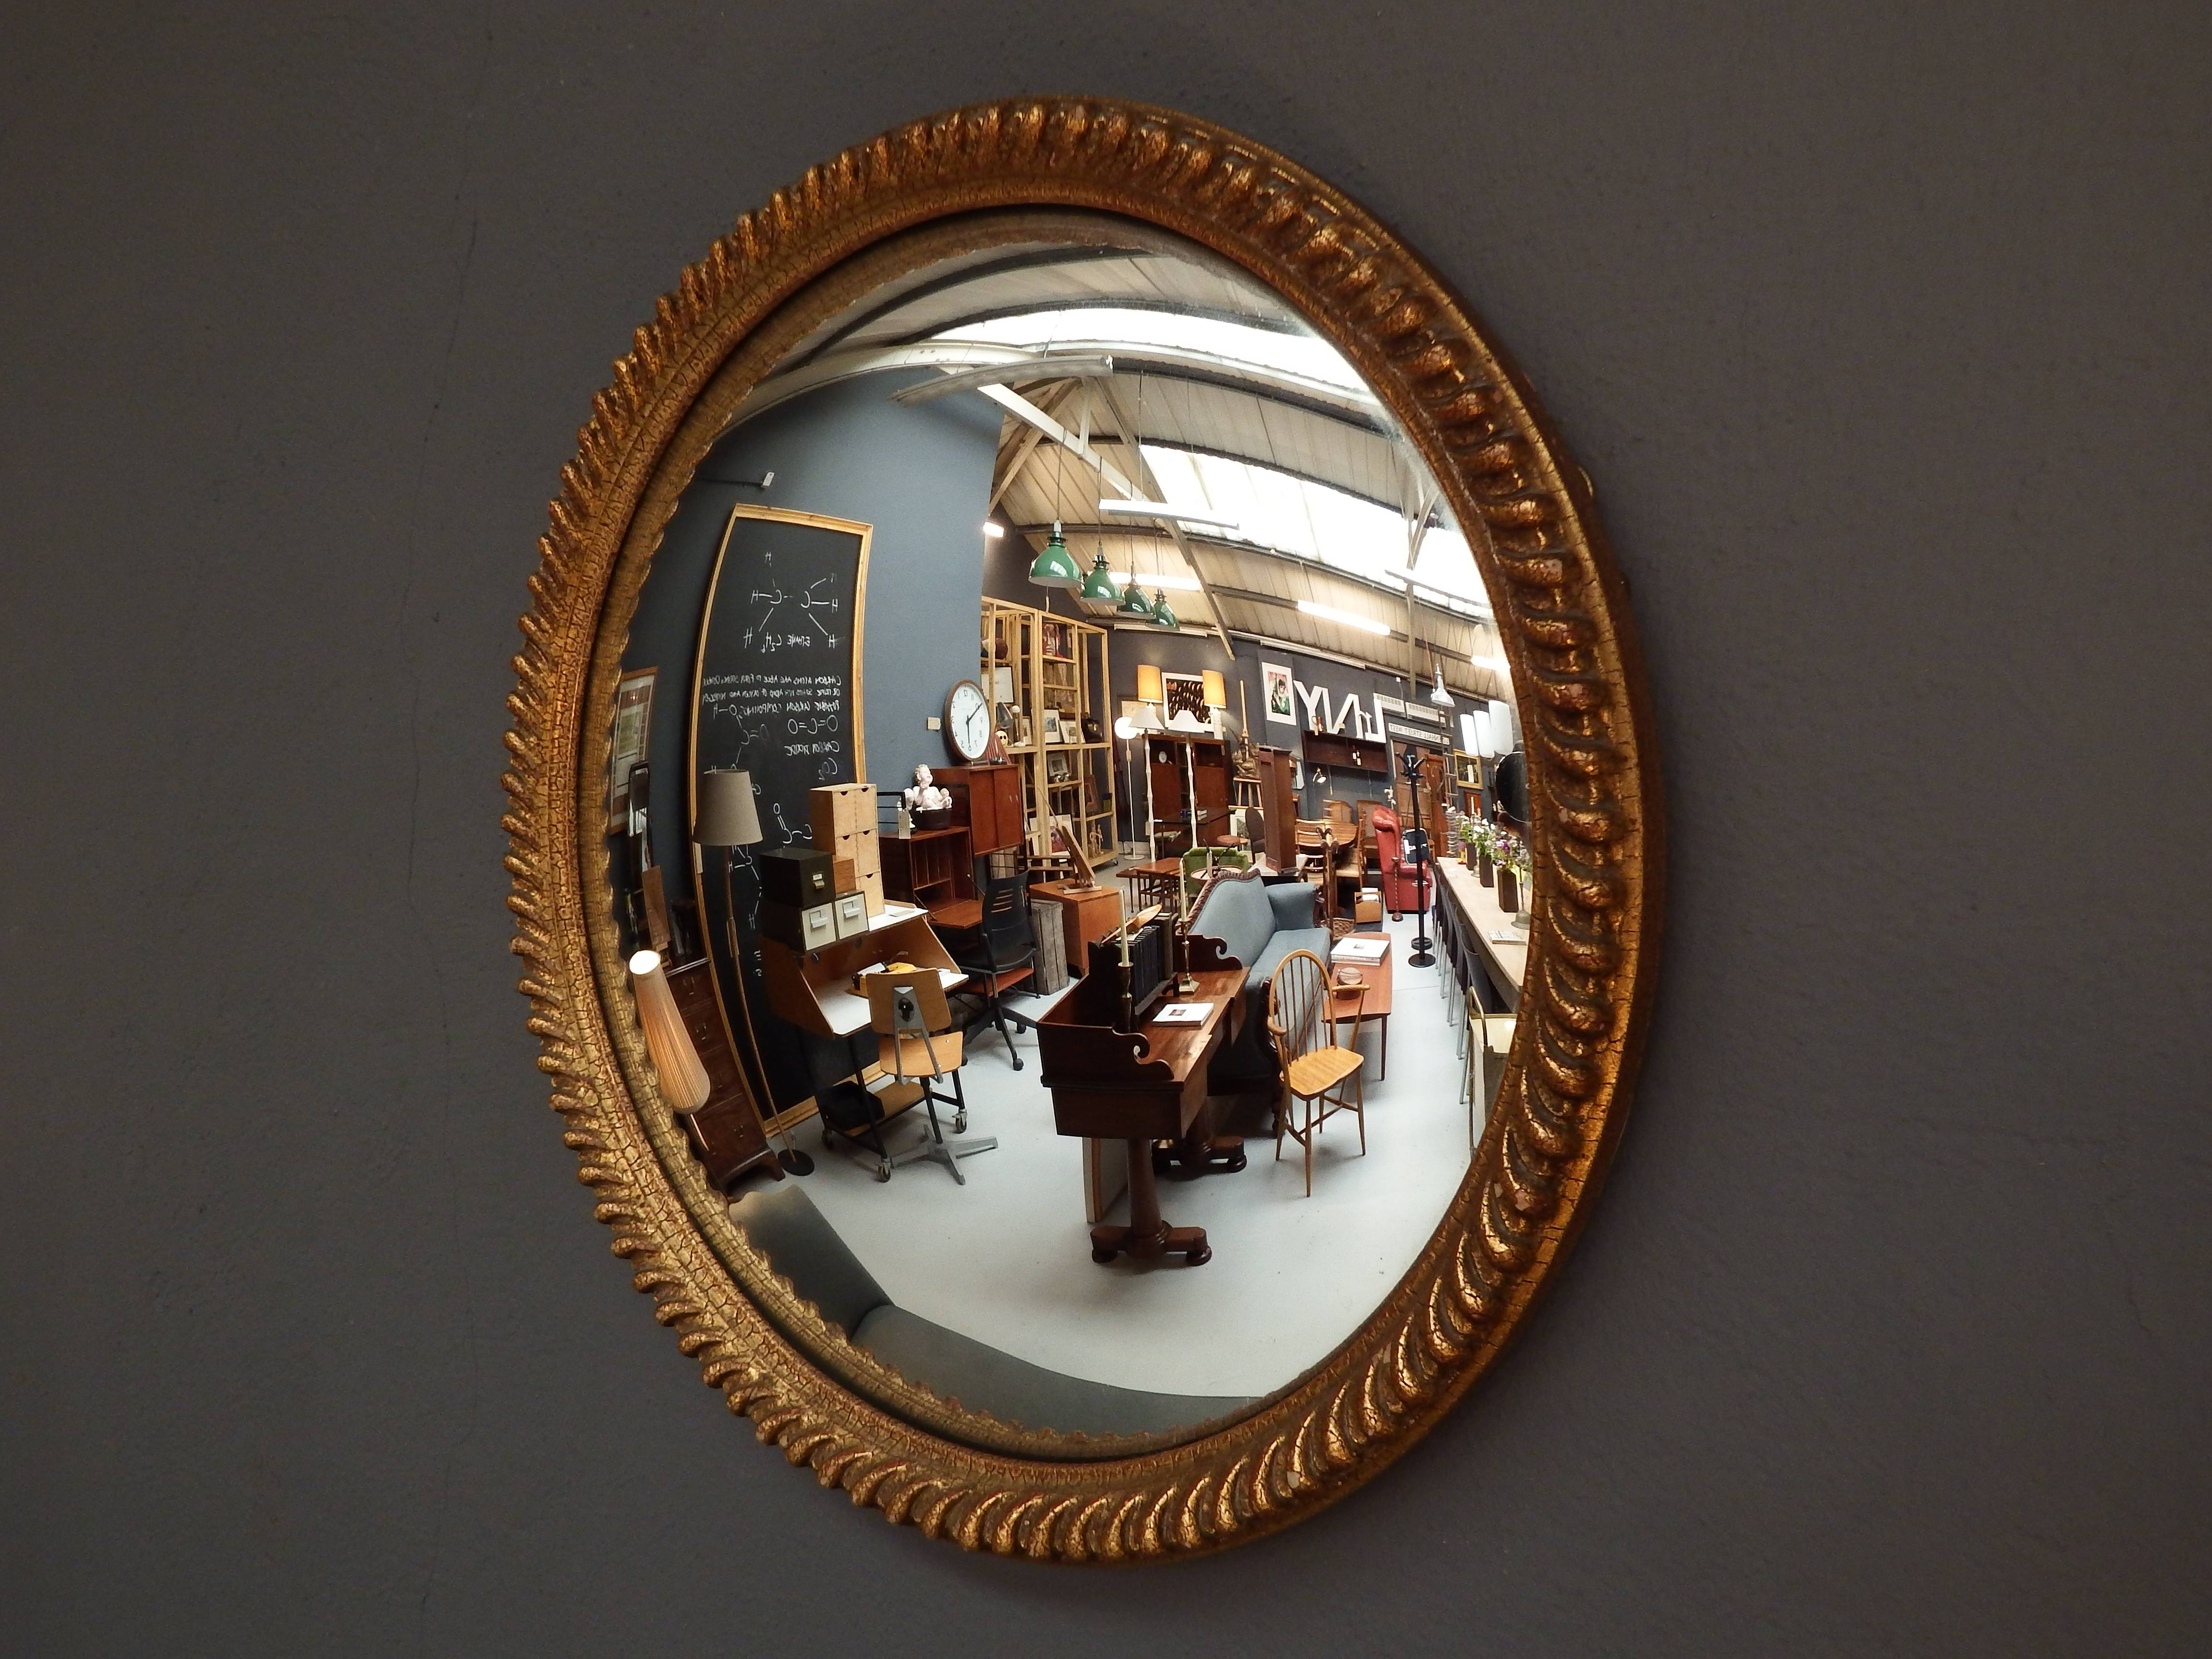 Vintage Convex Mirror | Drummond Reid Antiques inside Convex Wall Mirrors (Image 12 of 15)